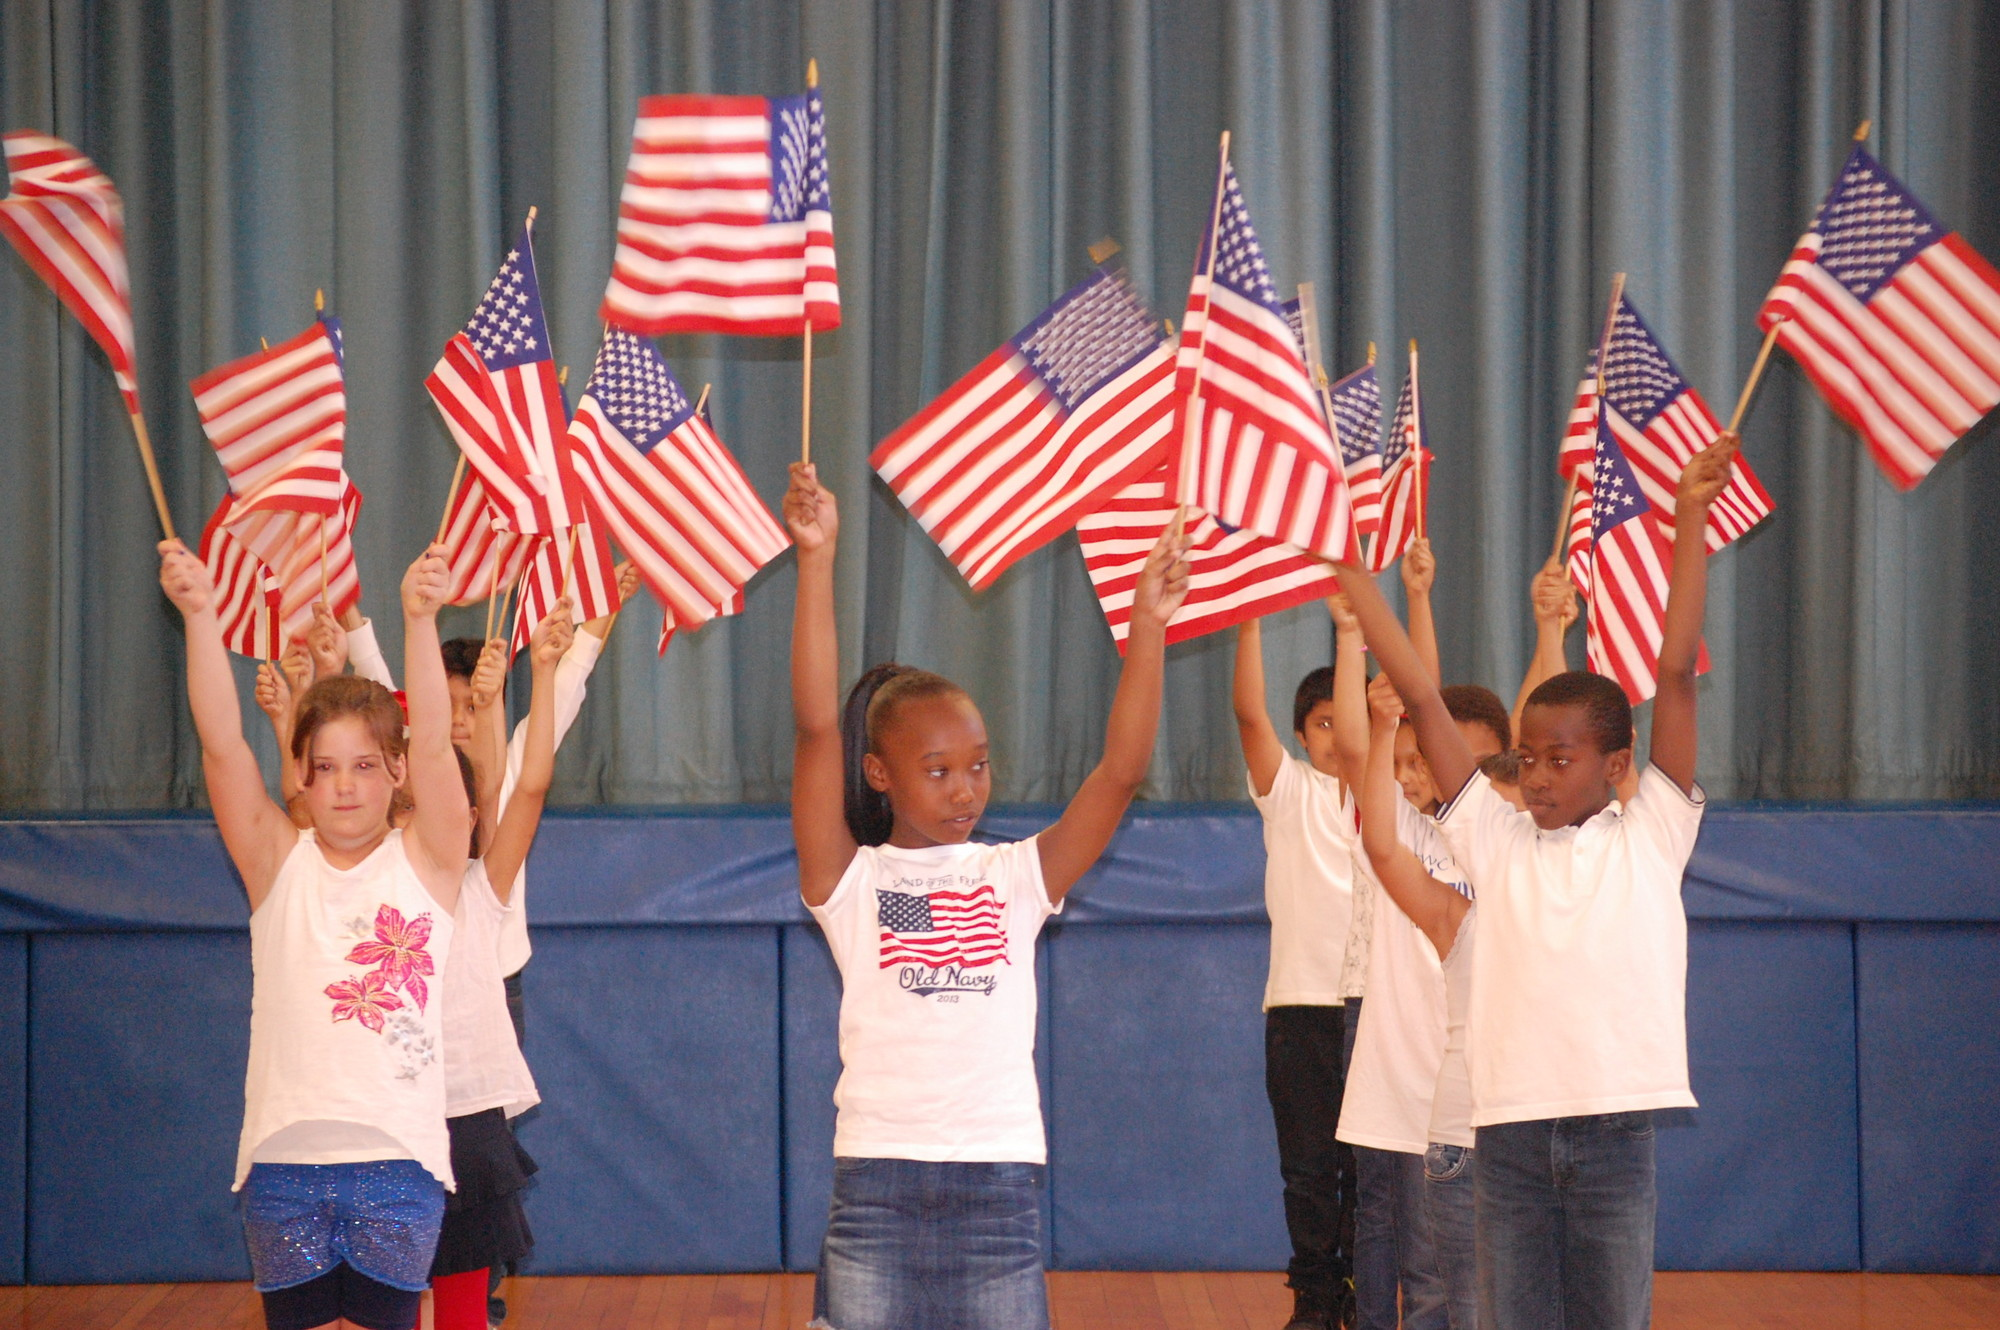 Students at the Robert W. Carbonaro School celebrated Flag Day with a choreographed presentation in the gymnasium on June 14.